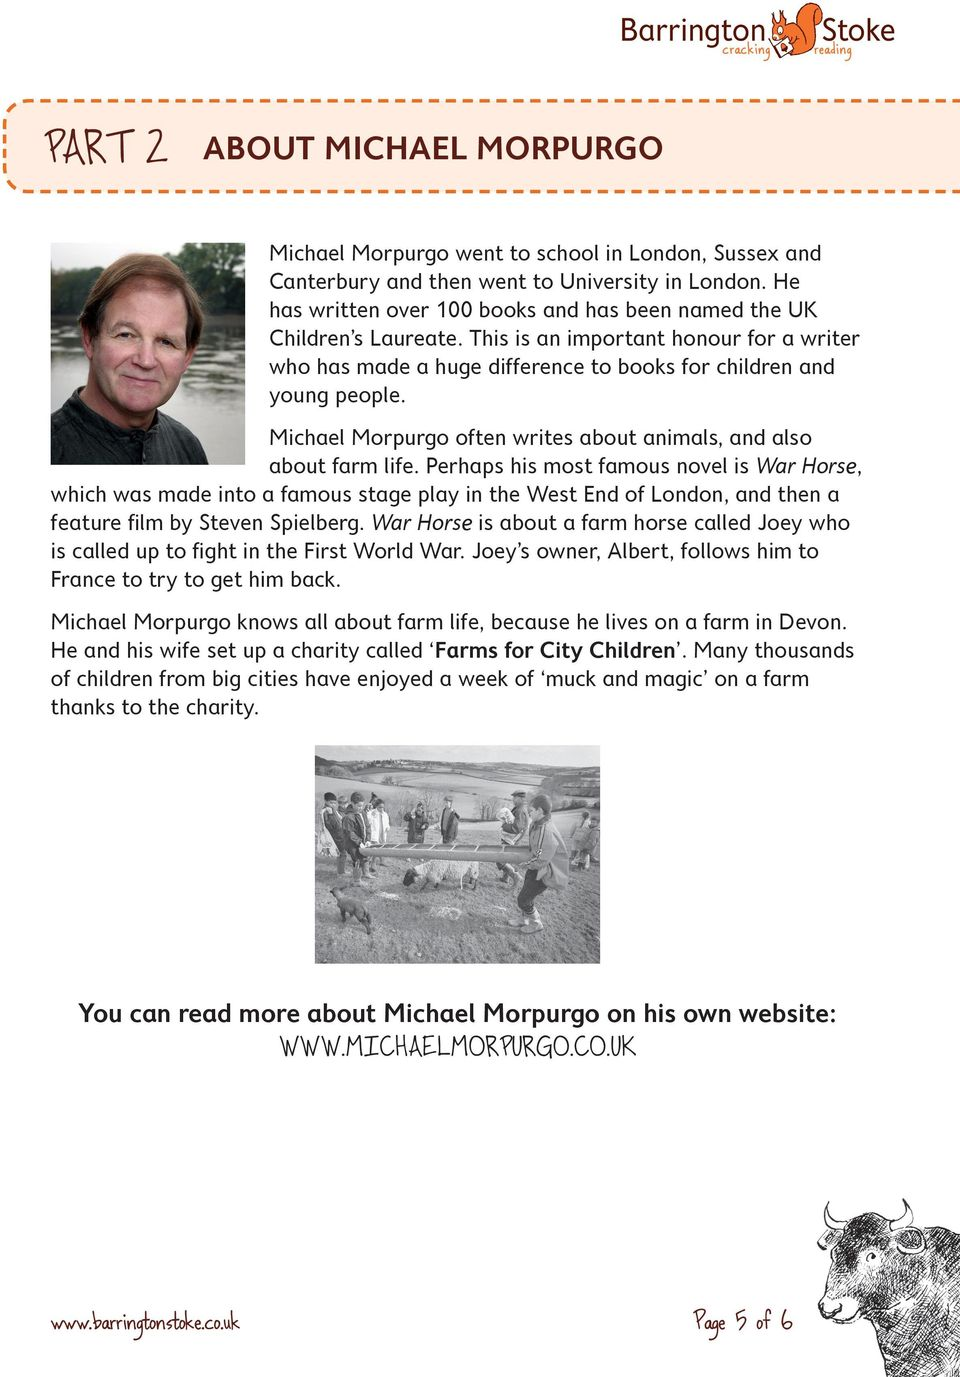 Michael Morpurgo often writes about animals, and also about farm life.